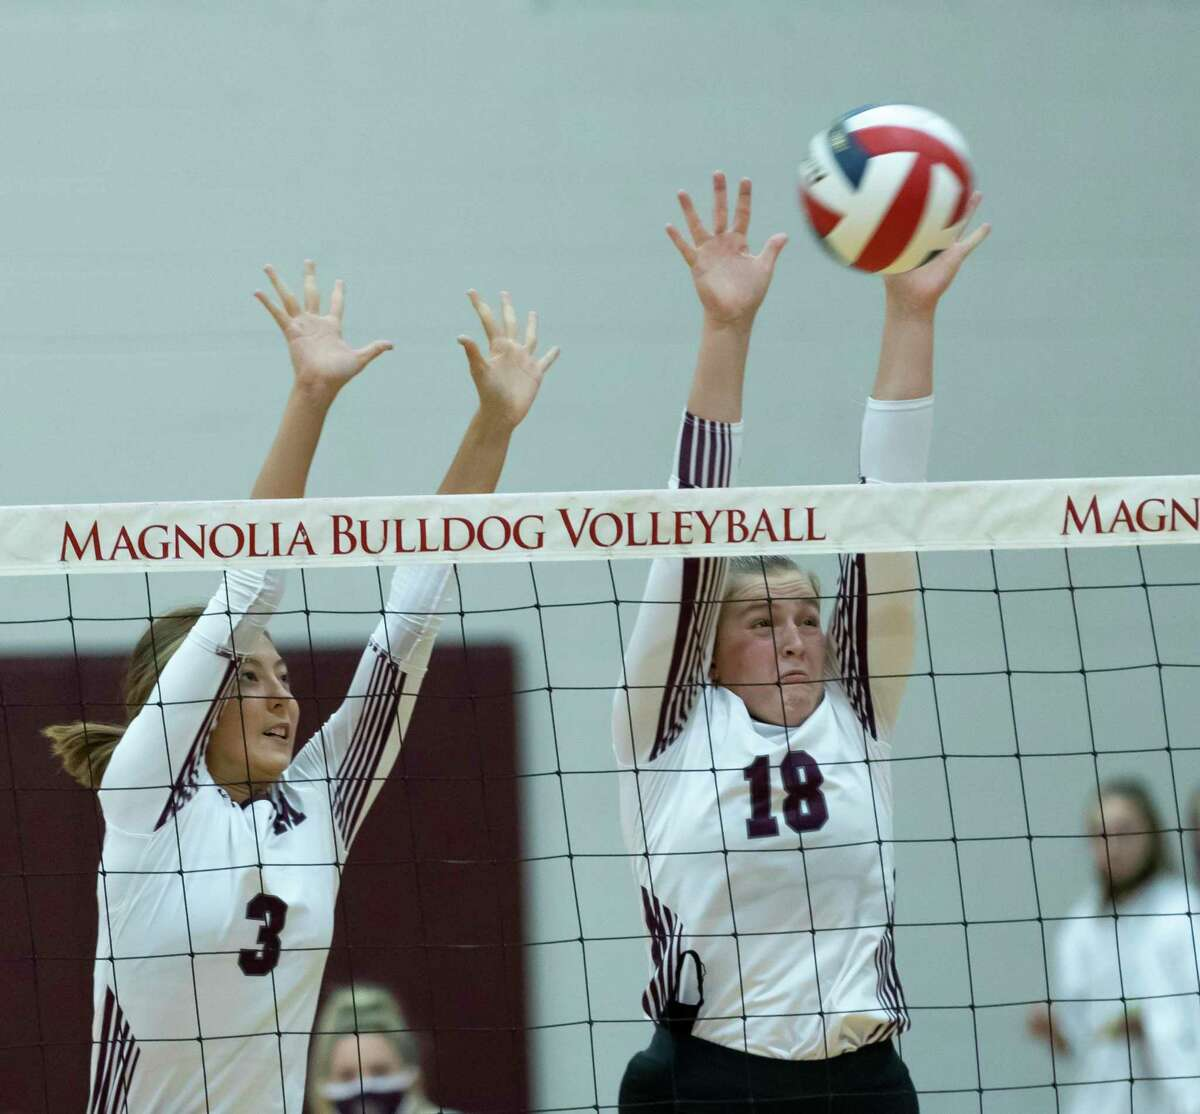 Magnolia middle blocker Reina King (3) and middle blocker Brynn Botkin (18) block a serve during the second set of a non-district volleyball match against Oak Ridge at Magnolia High School, Saturday, Sept. 19, 2020.